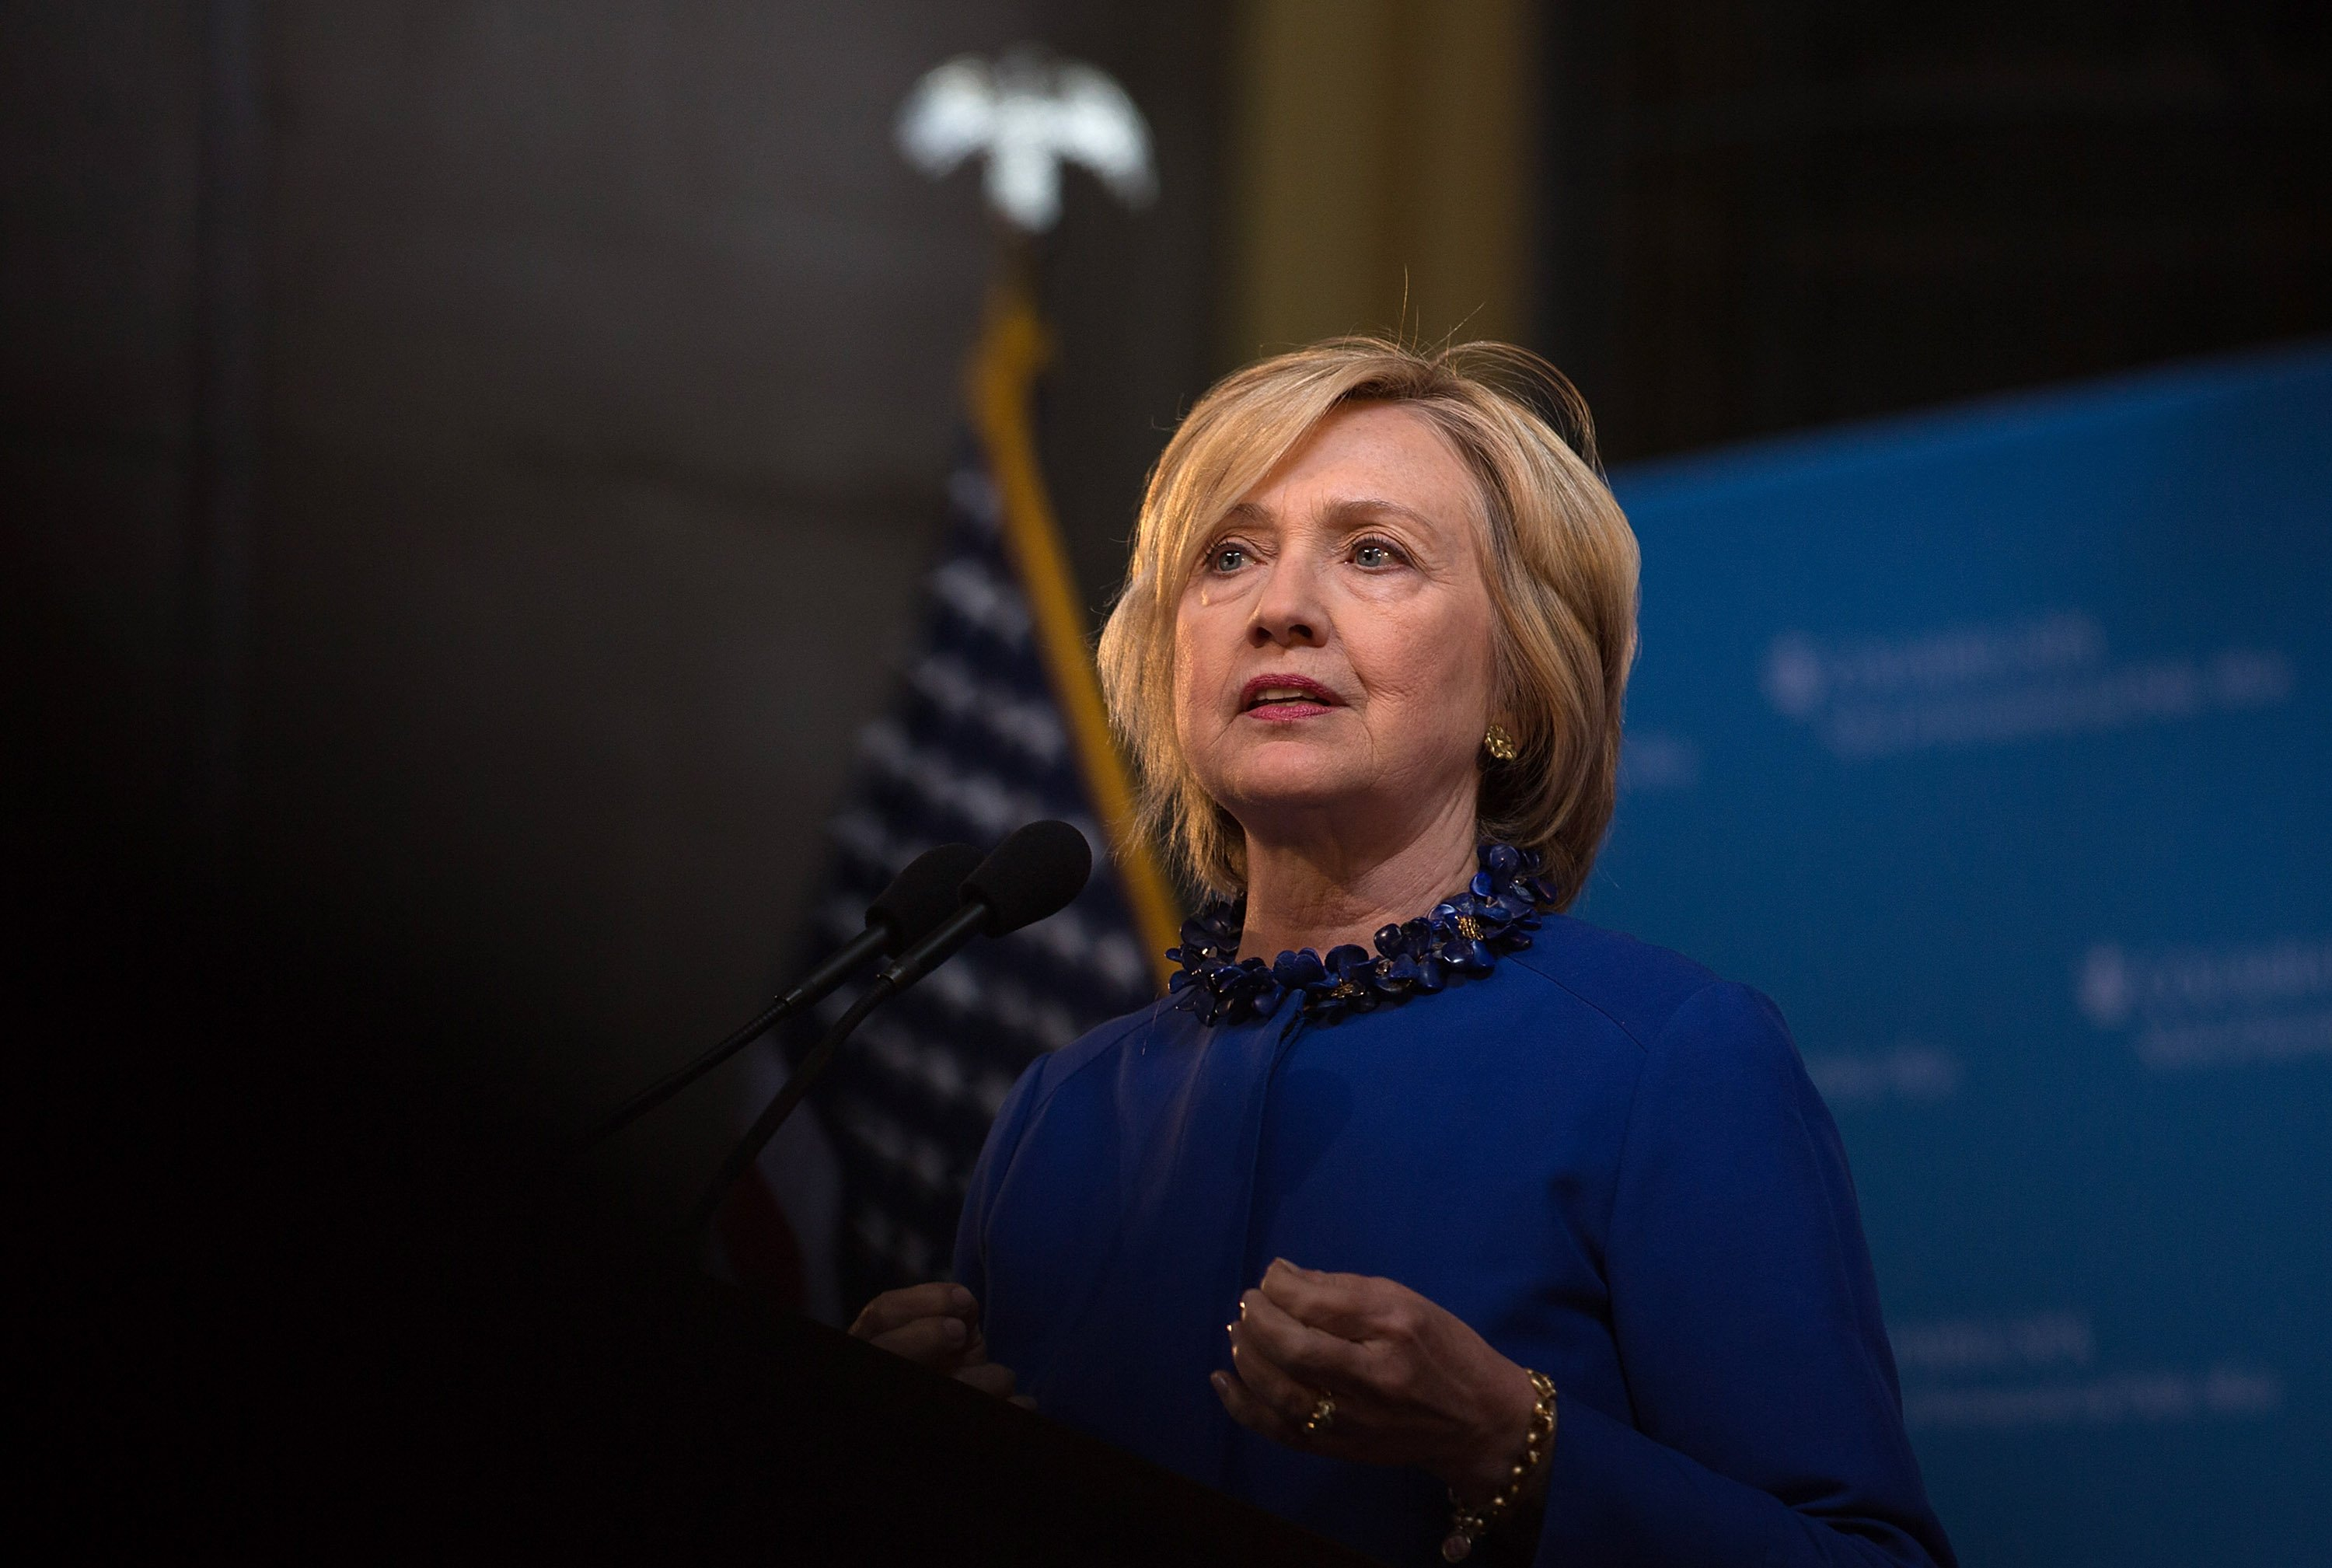 Democratic presidential hopeful and former Secretary of State Hillary Clinton speaks during the David N. Dinkins Leadership and Public Policy Forum at Columbia University on April 29, 2015 in New York City.